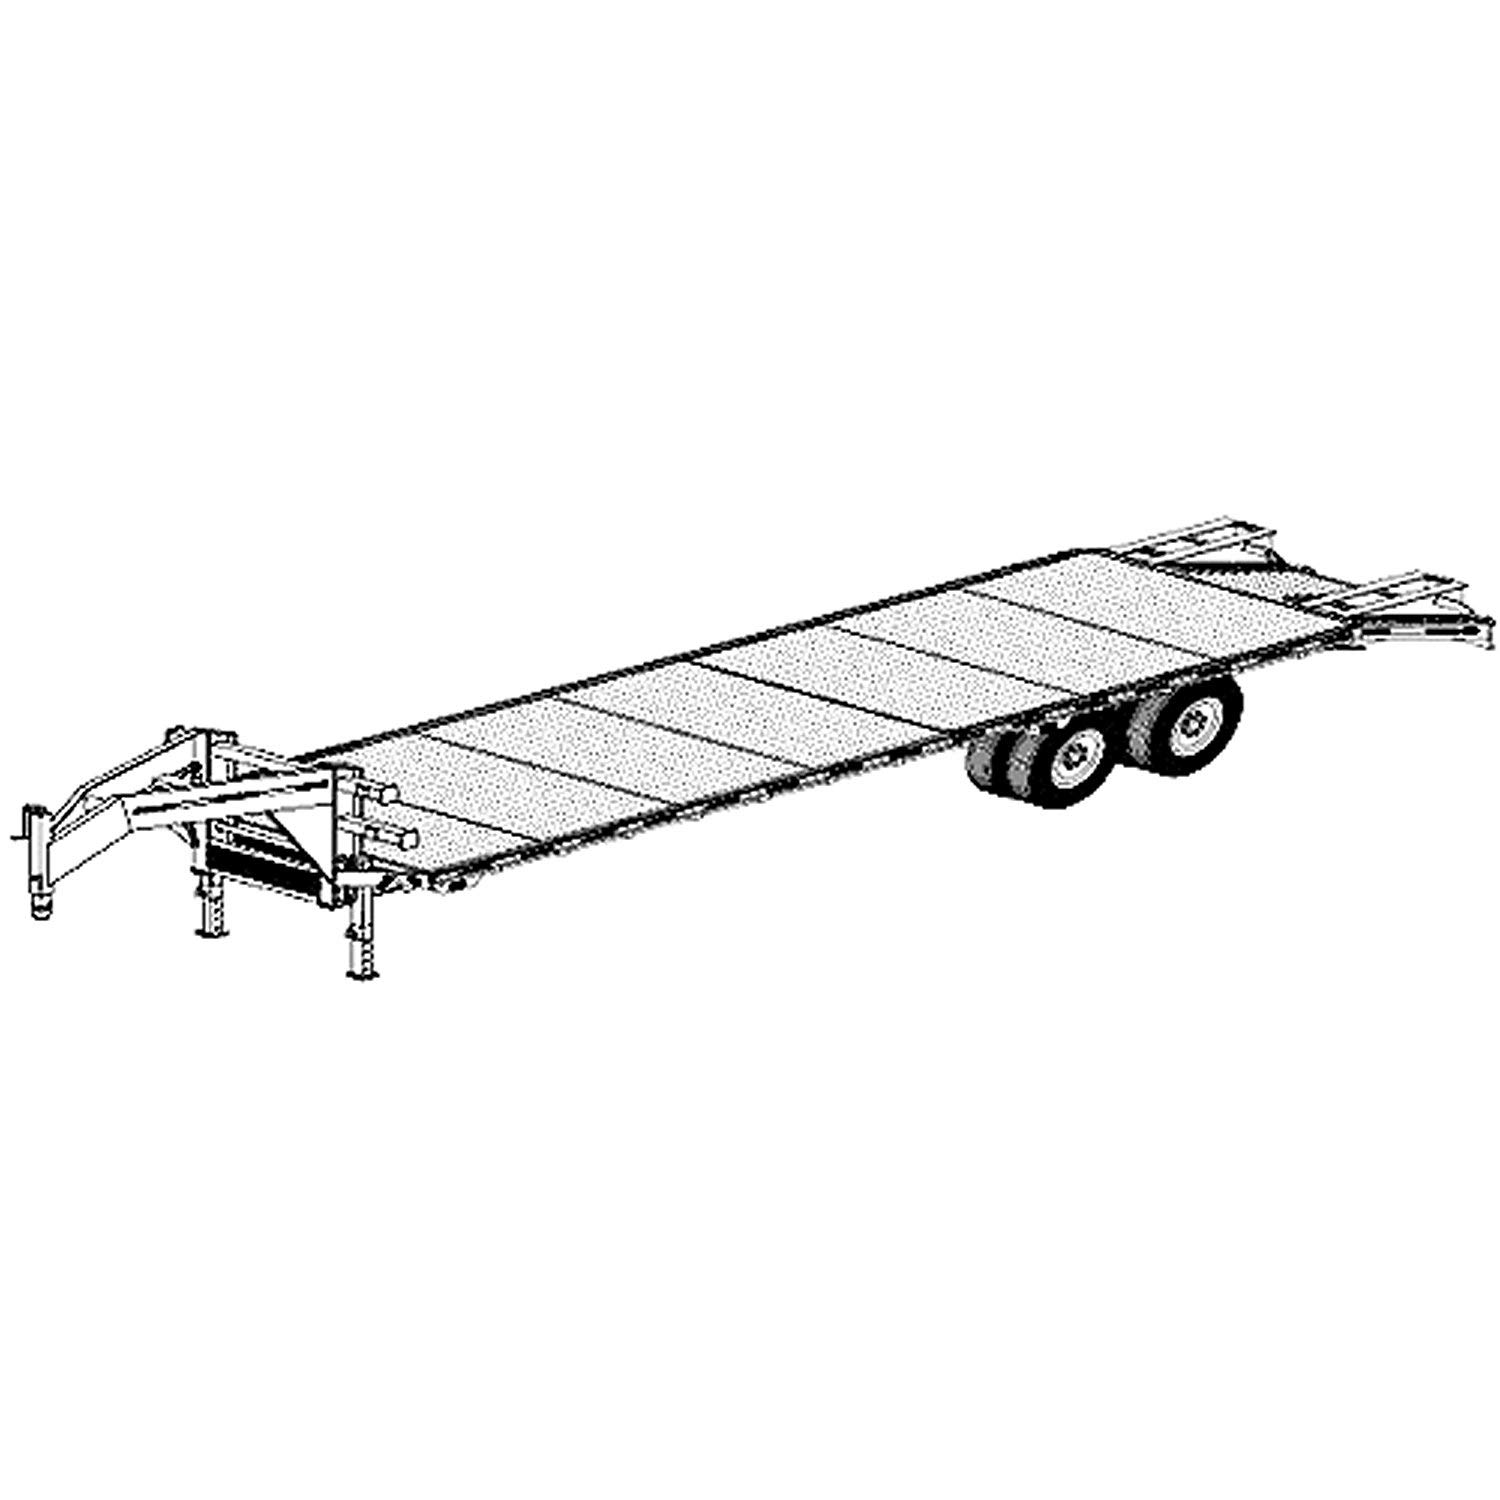 32 'x 102'' Gooseneck Flat Deck Trailer Plans Blueprints, Model 5232 by Master Plan & Design